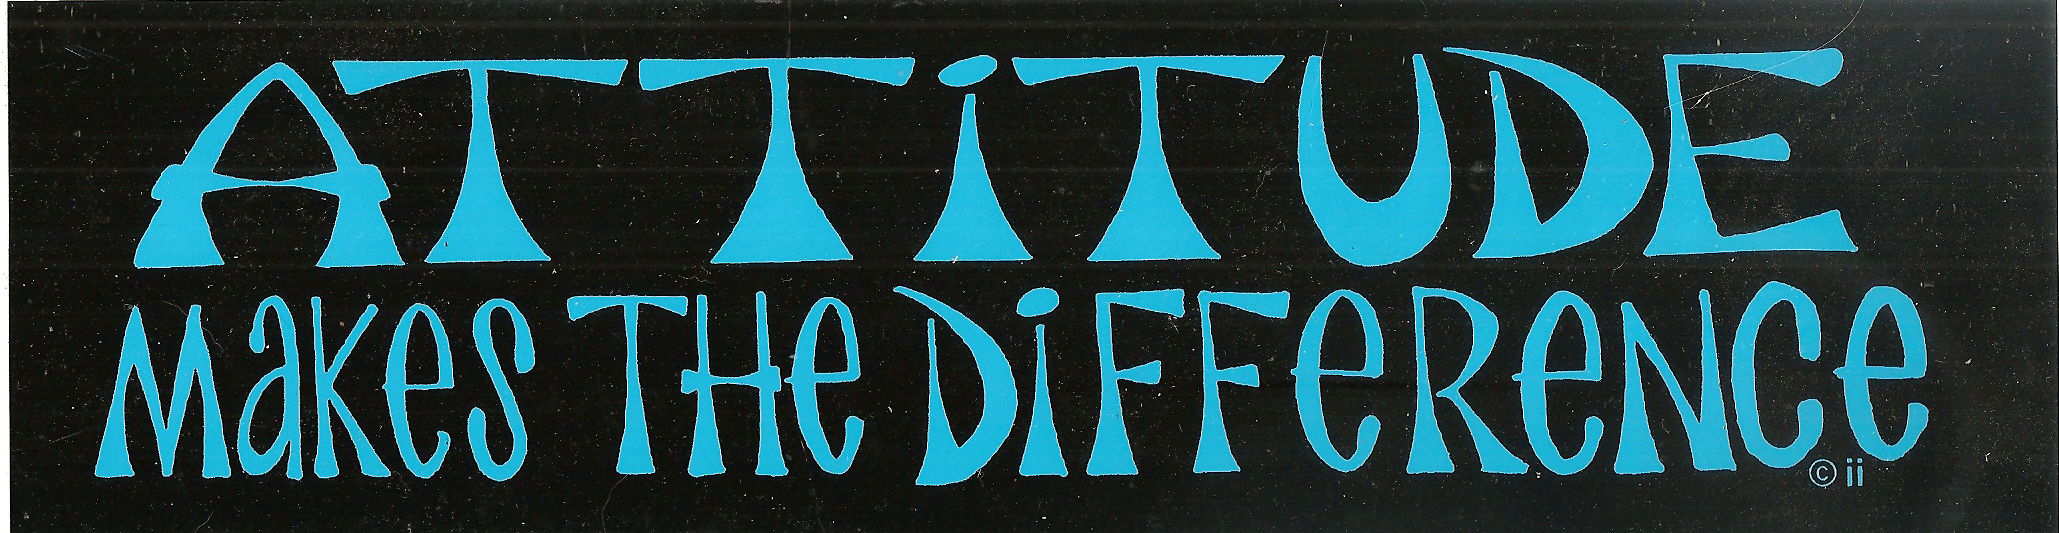 Attitude Makes the Difference Bumper Sticker